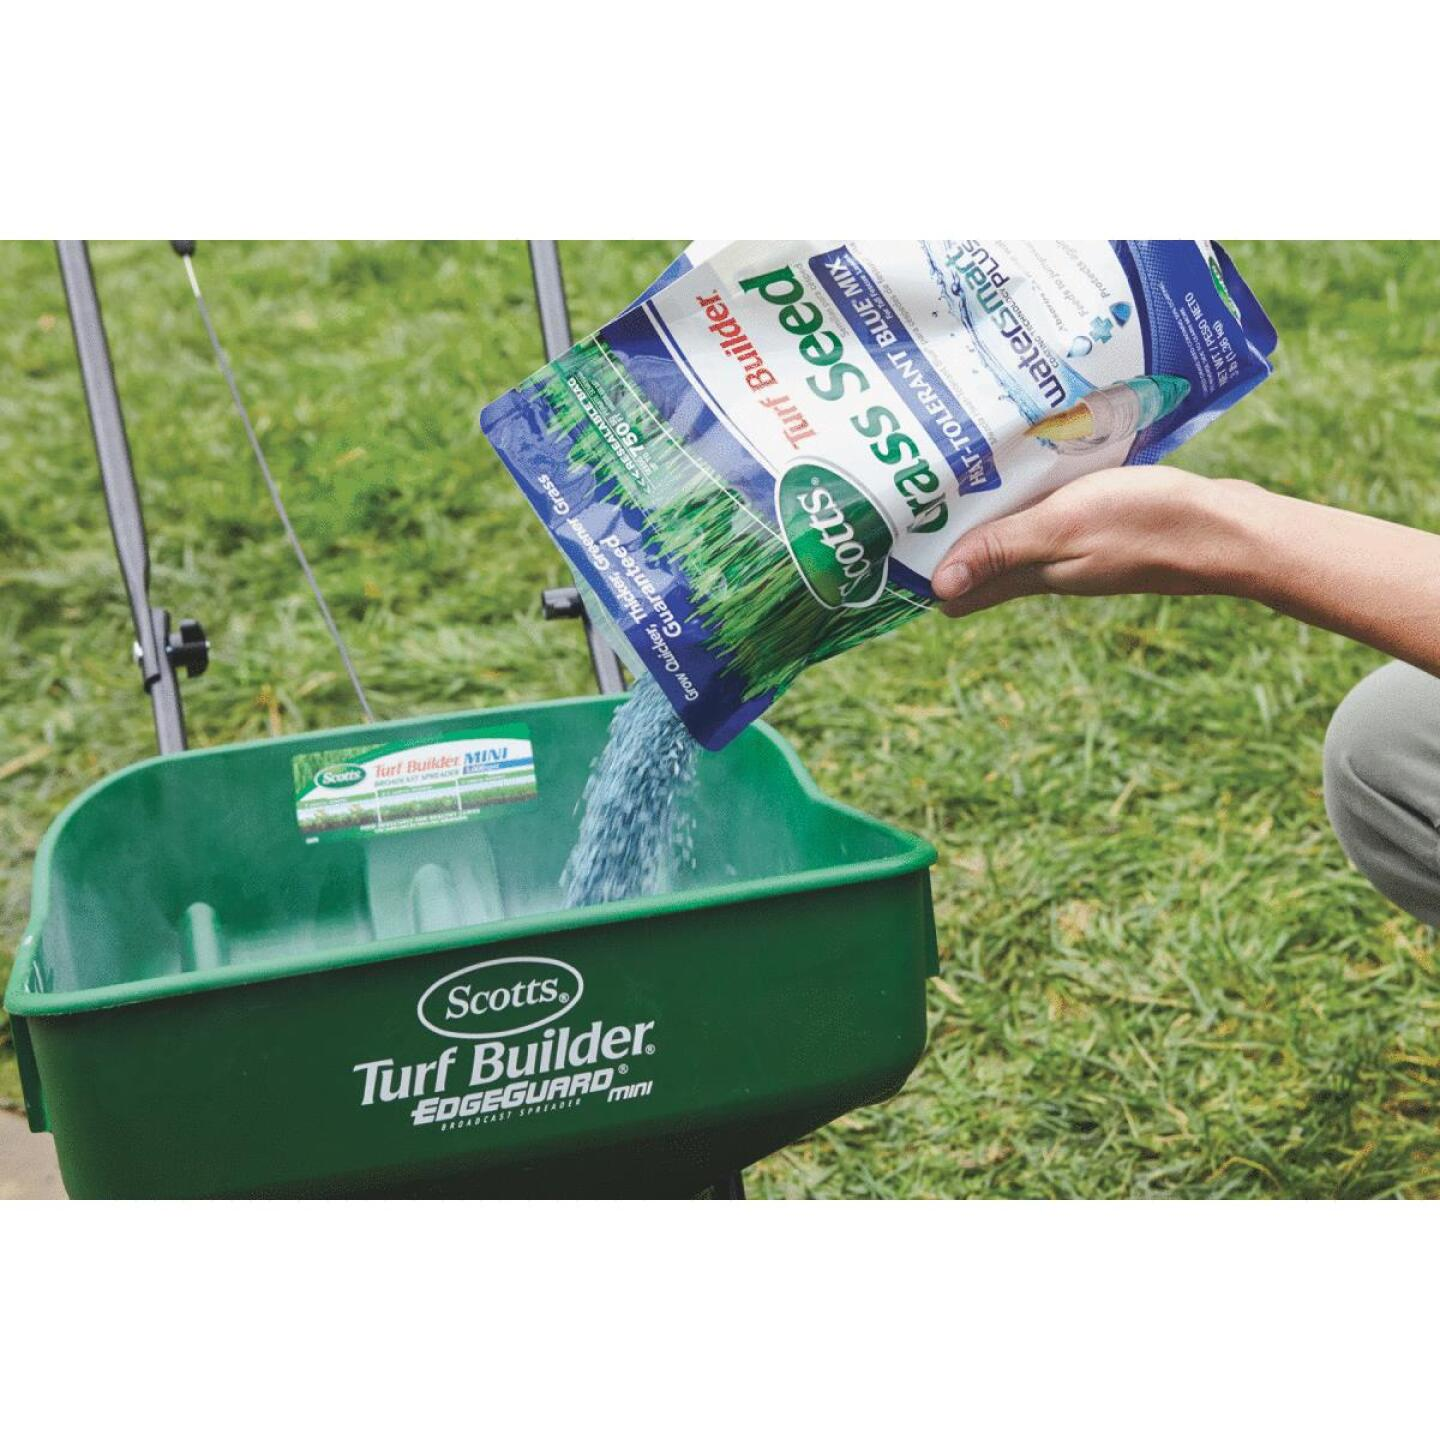 Scotts Turf Builder 3 Lb. 750 Sq. Ft. Coverage Heat Tolerant Blue Grass Seed Image 2